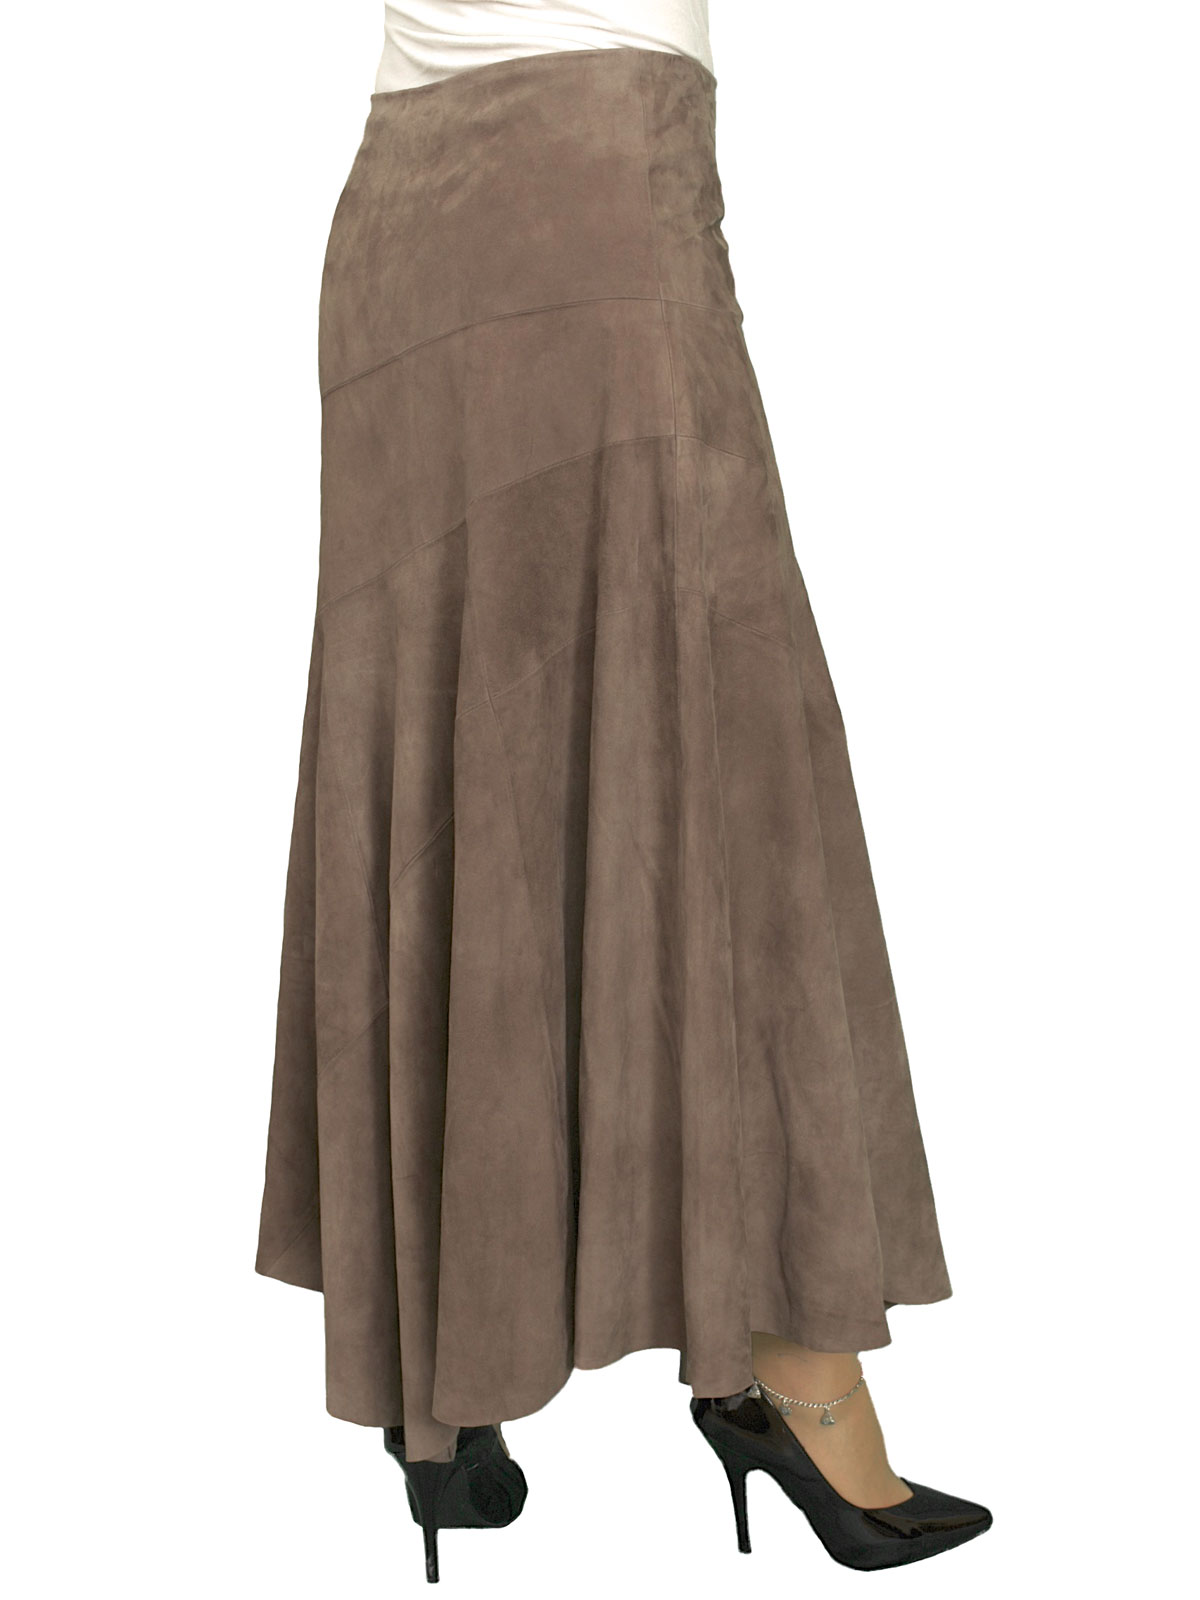 The faux suede skirt will be your new wardrobe staple; ever stylish, easy to wear and oh so versatile, these little beauts will have you turning heads and totally owning it. When it comes to new season style, Missguided is number one.